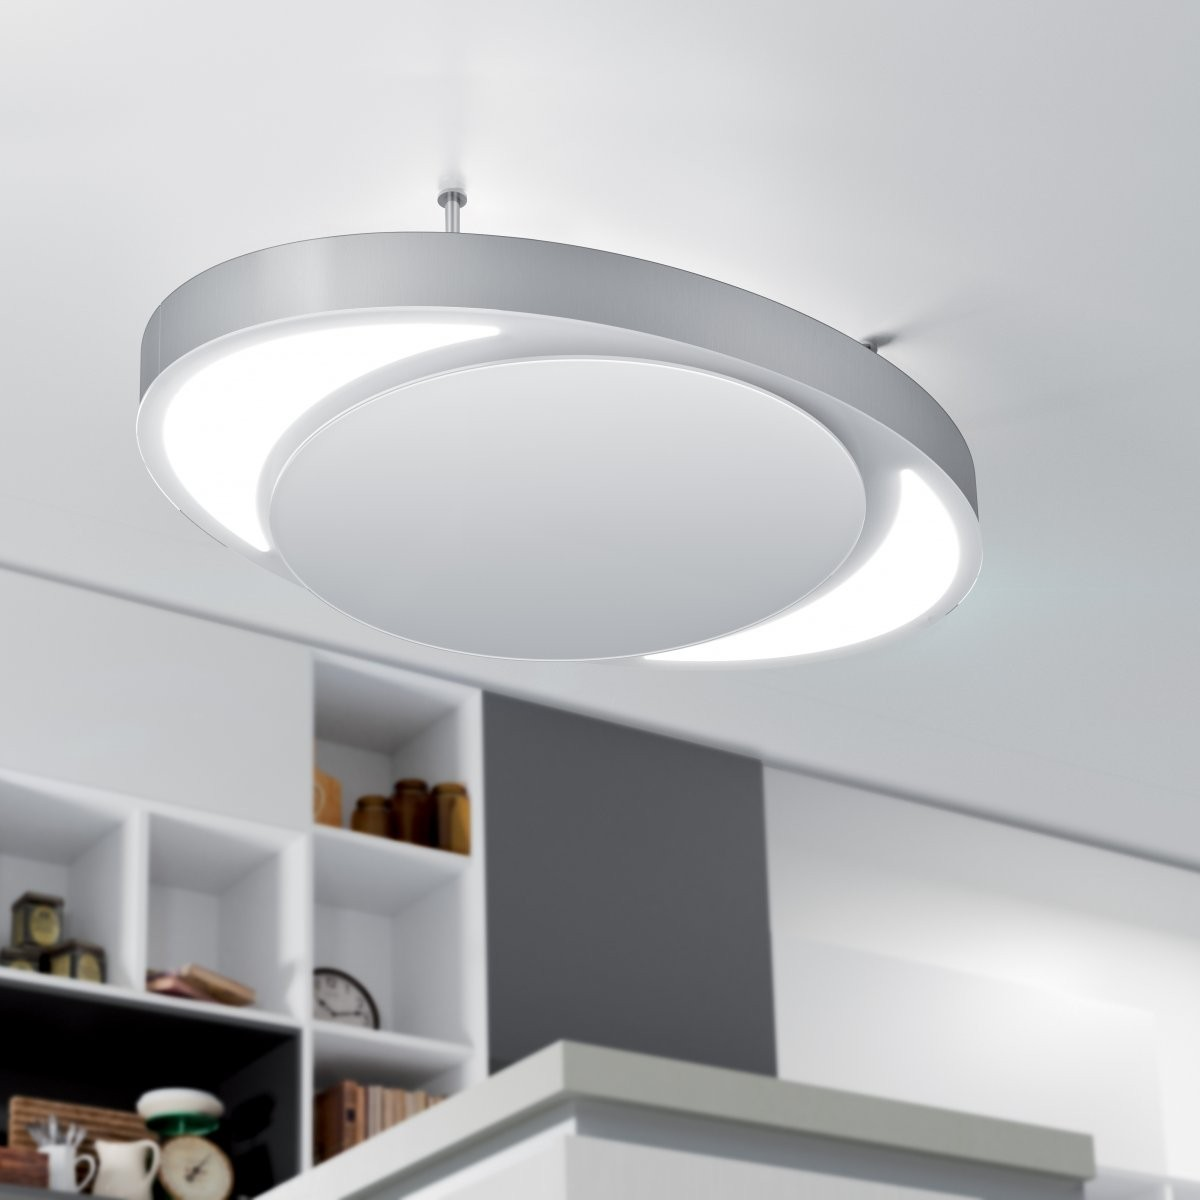 Airforce Ellitto Integra 78_4 Classic 90x65 X/W LED